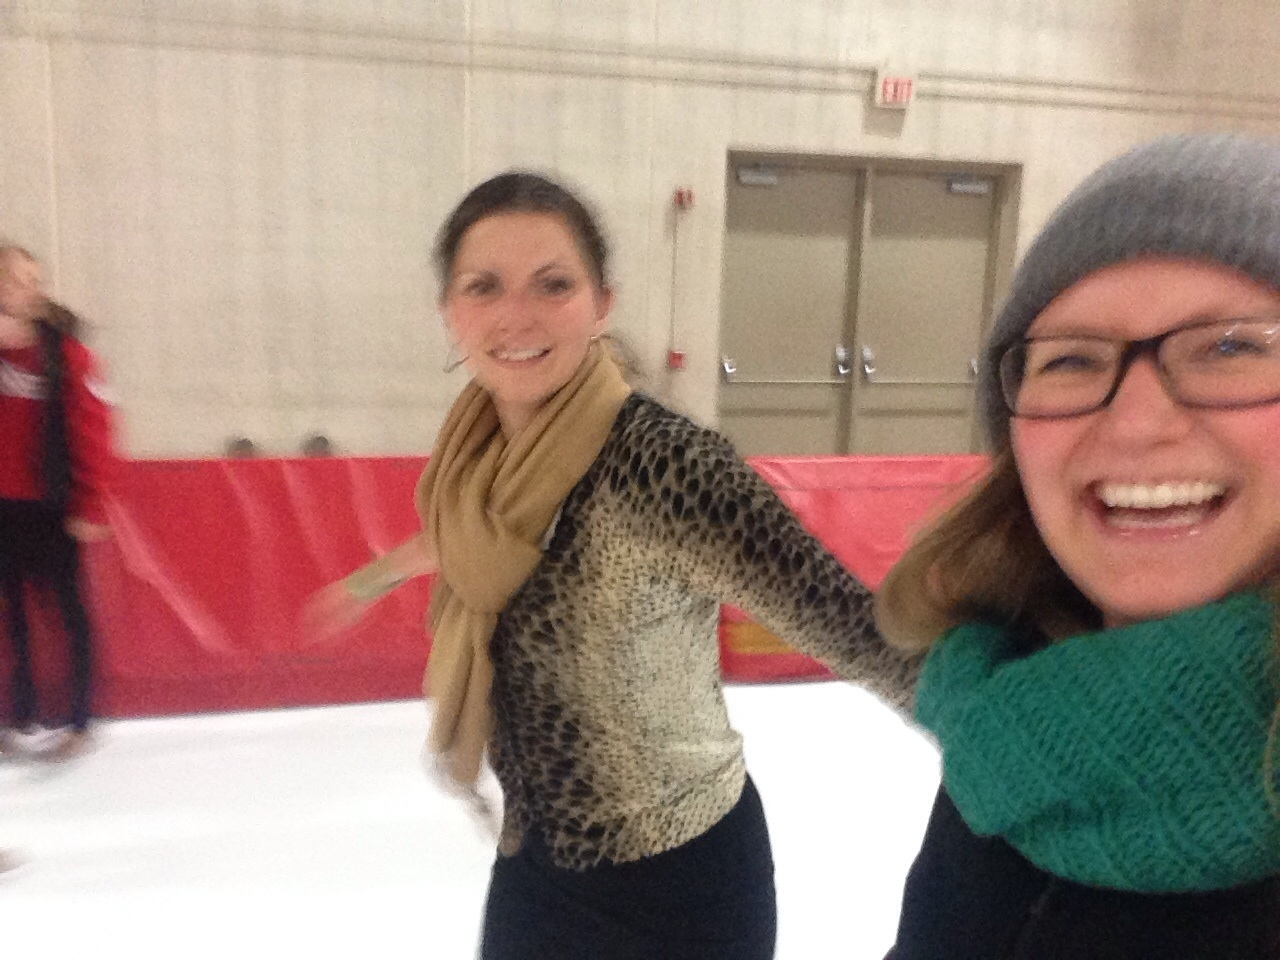 It's impossible to take a decent photo while sliding over solid ice on two narrow slices of metal.